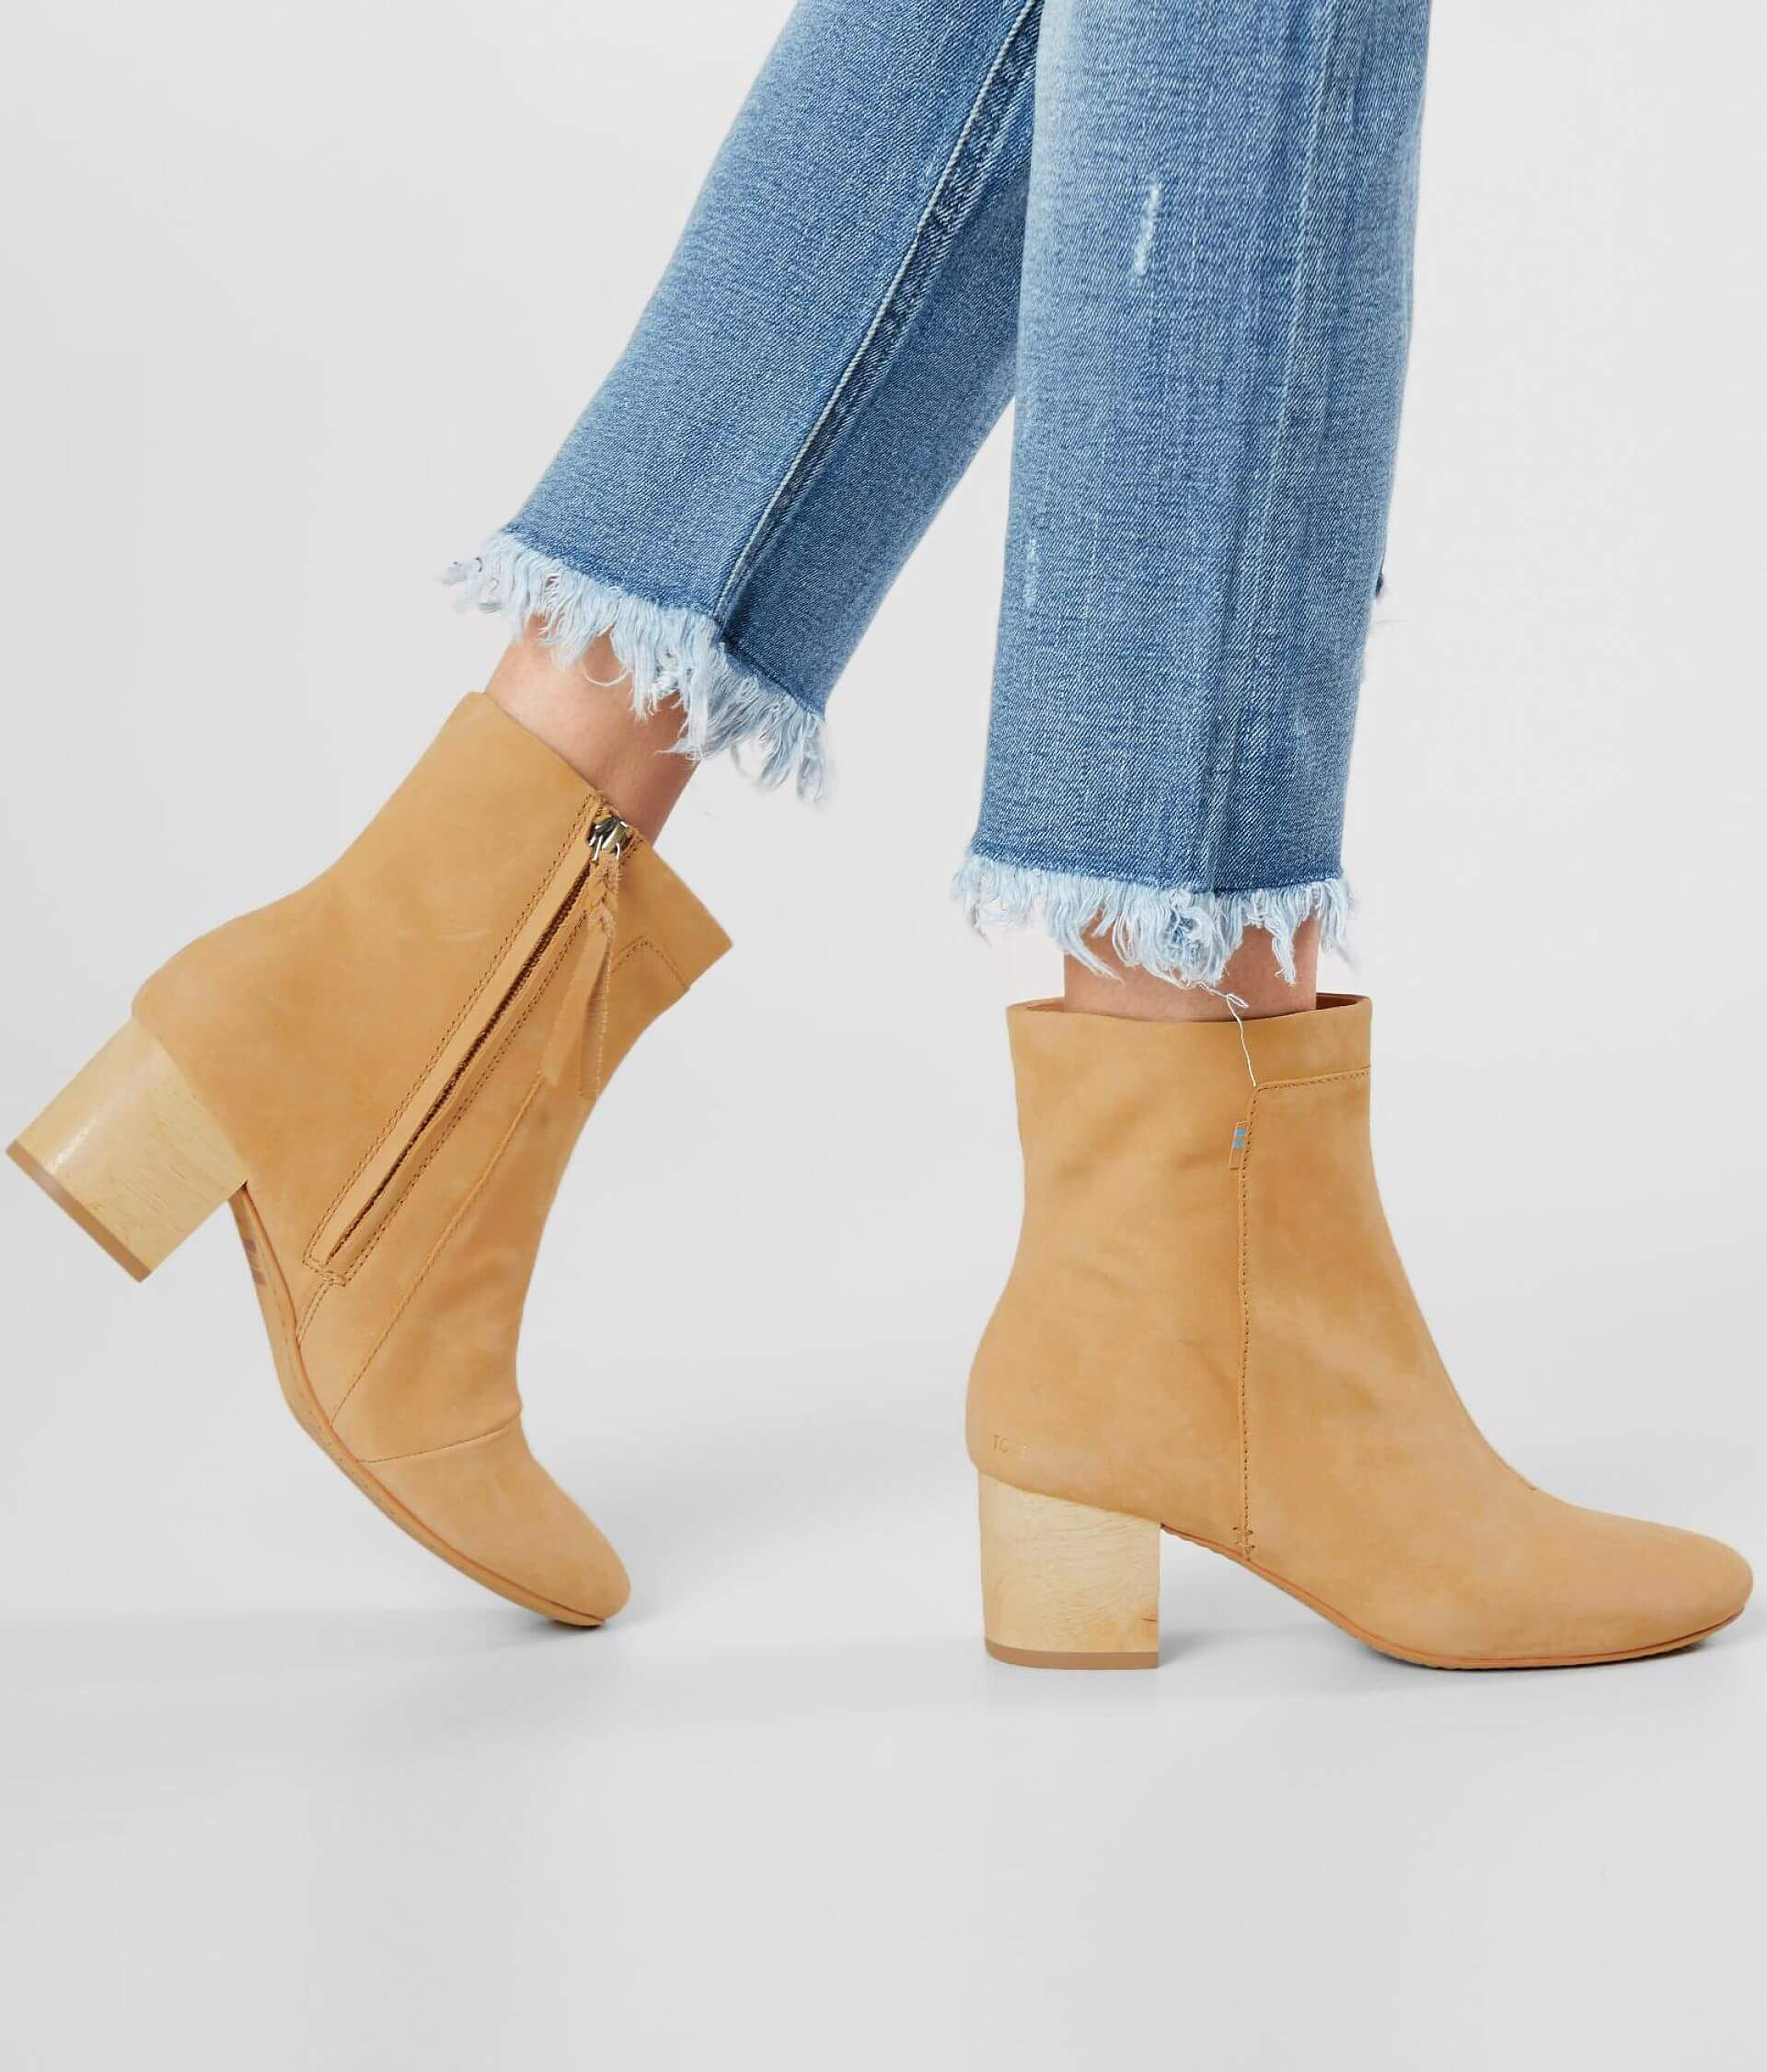 3e6651b7d99 TOMS Evie Suede Ankle Boot - Women's Shoes in Honey Nubuck | Buckle